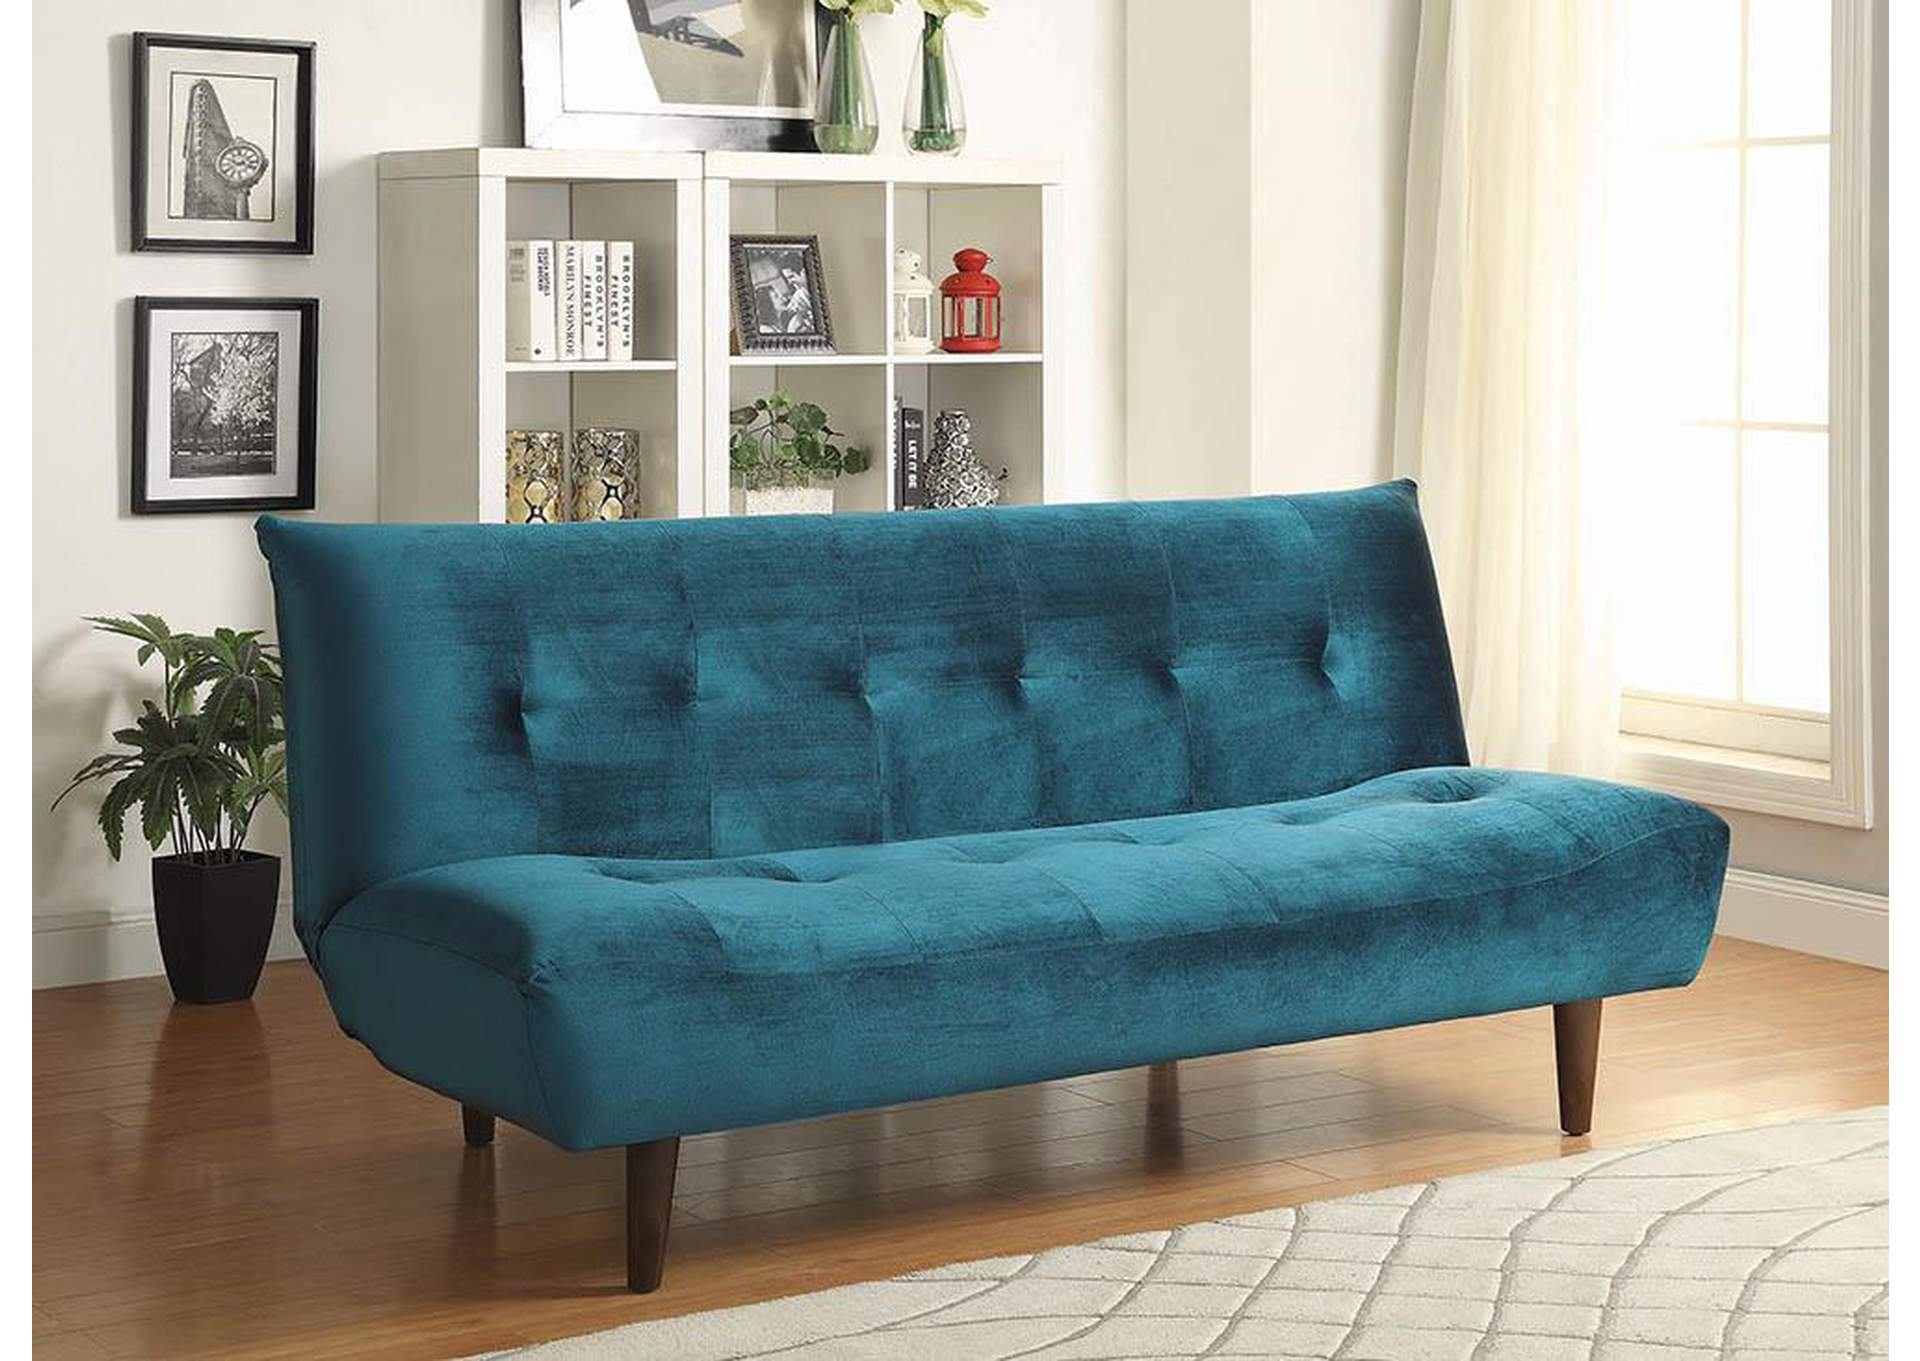 Tallahassee Discount Furniture Tallahassee Fl Green Sofa Bed